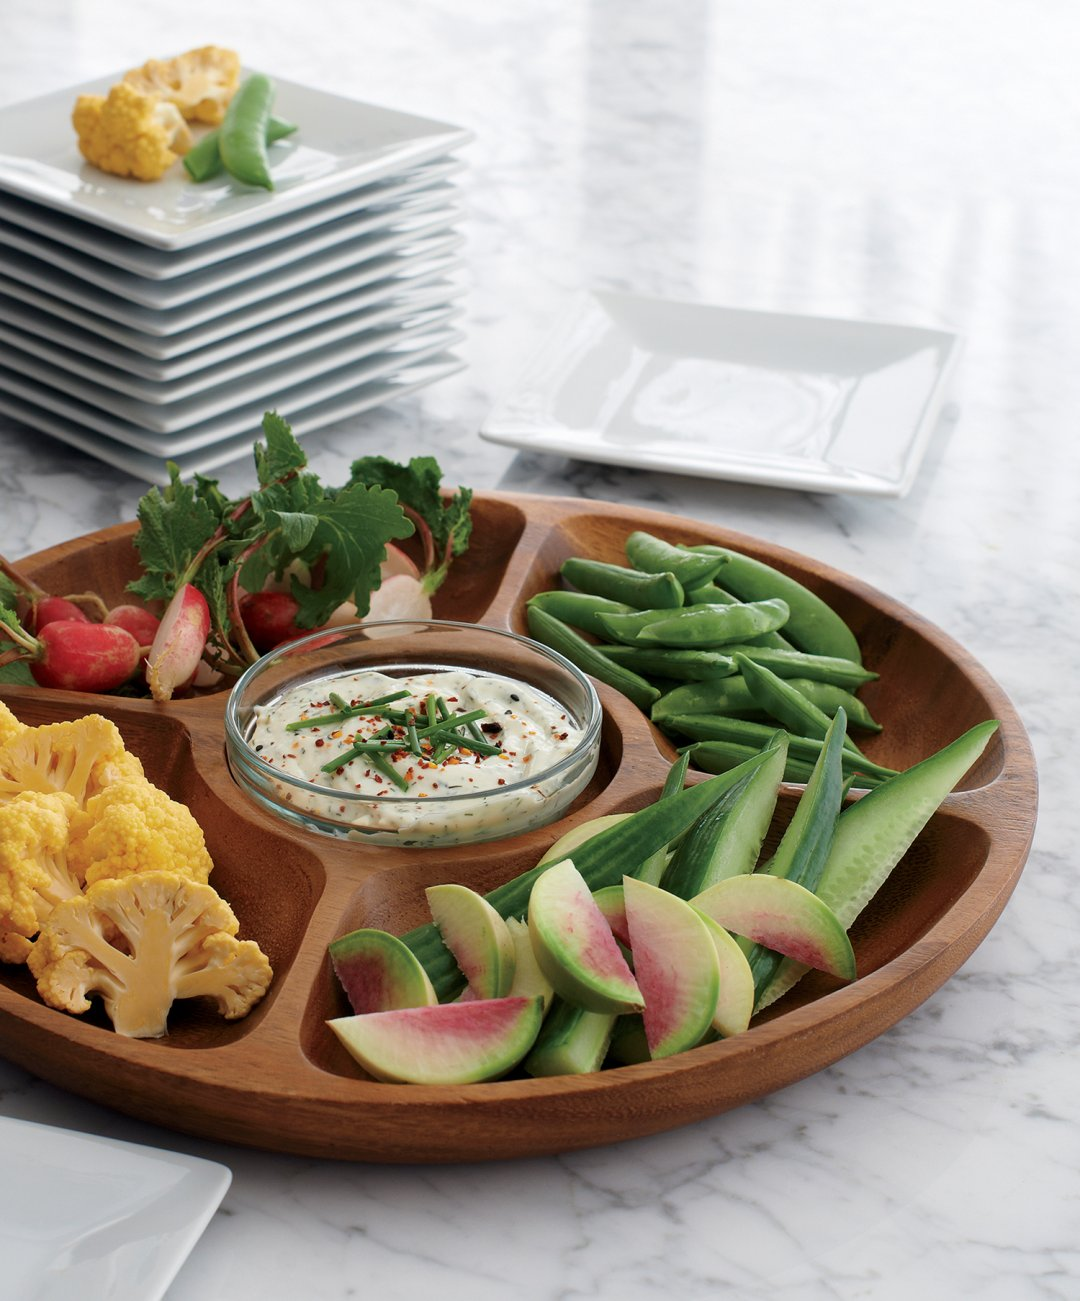 Selection of veggies served in a wooden dish with dip